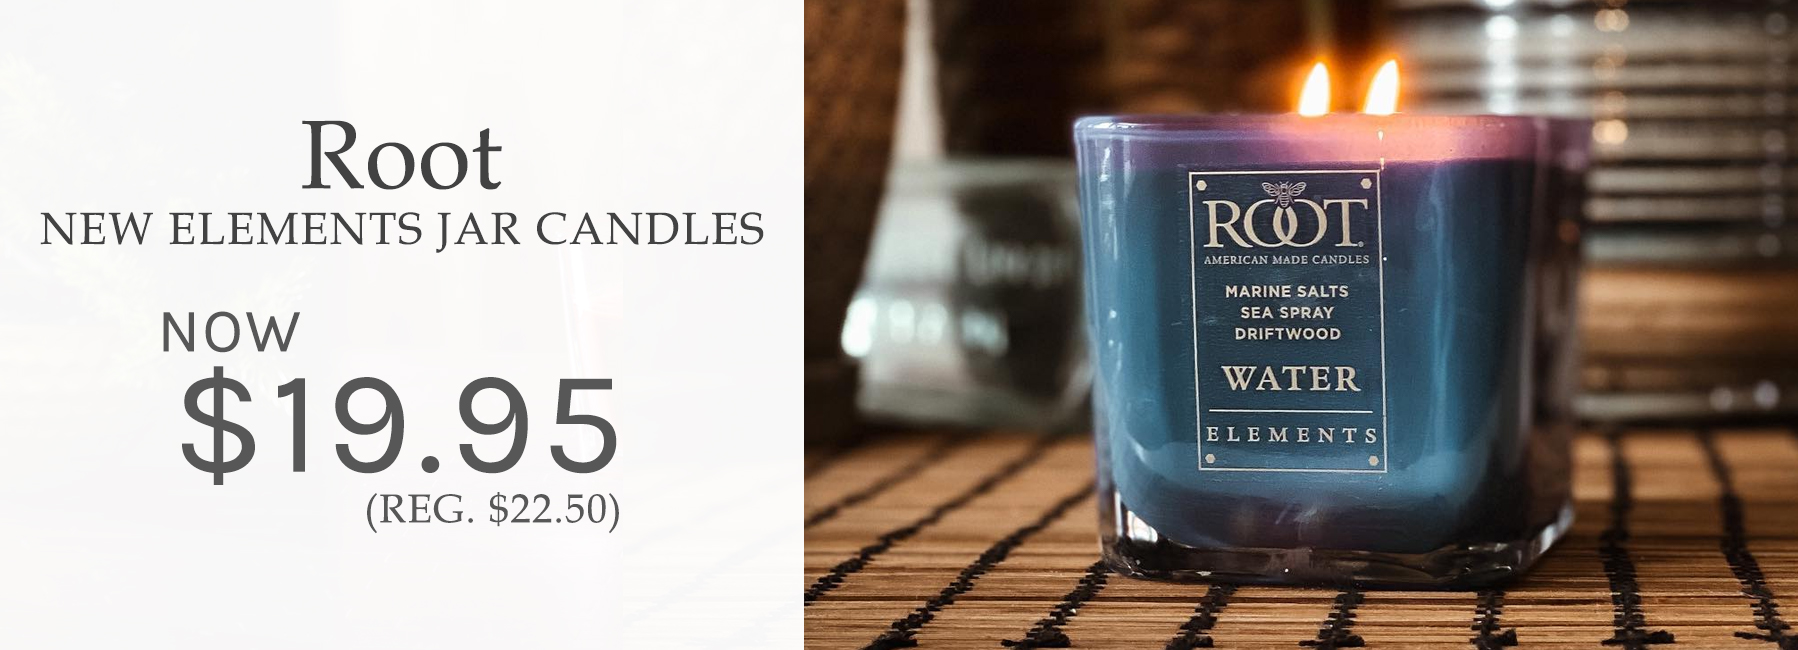 Root - NEW Elements Jar Candles - NOW $19.95 - Reg. $22.50